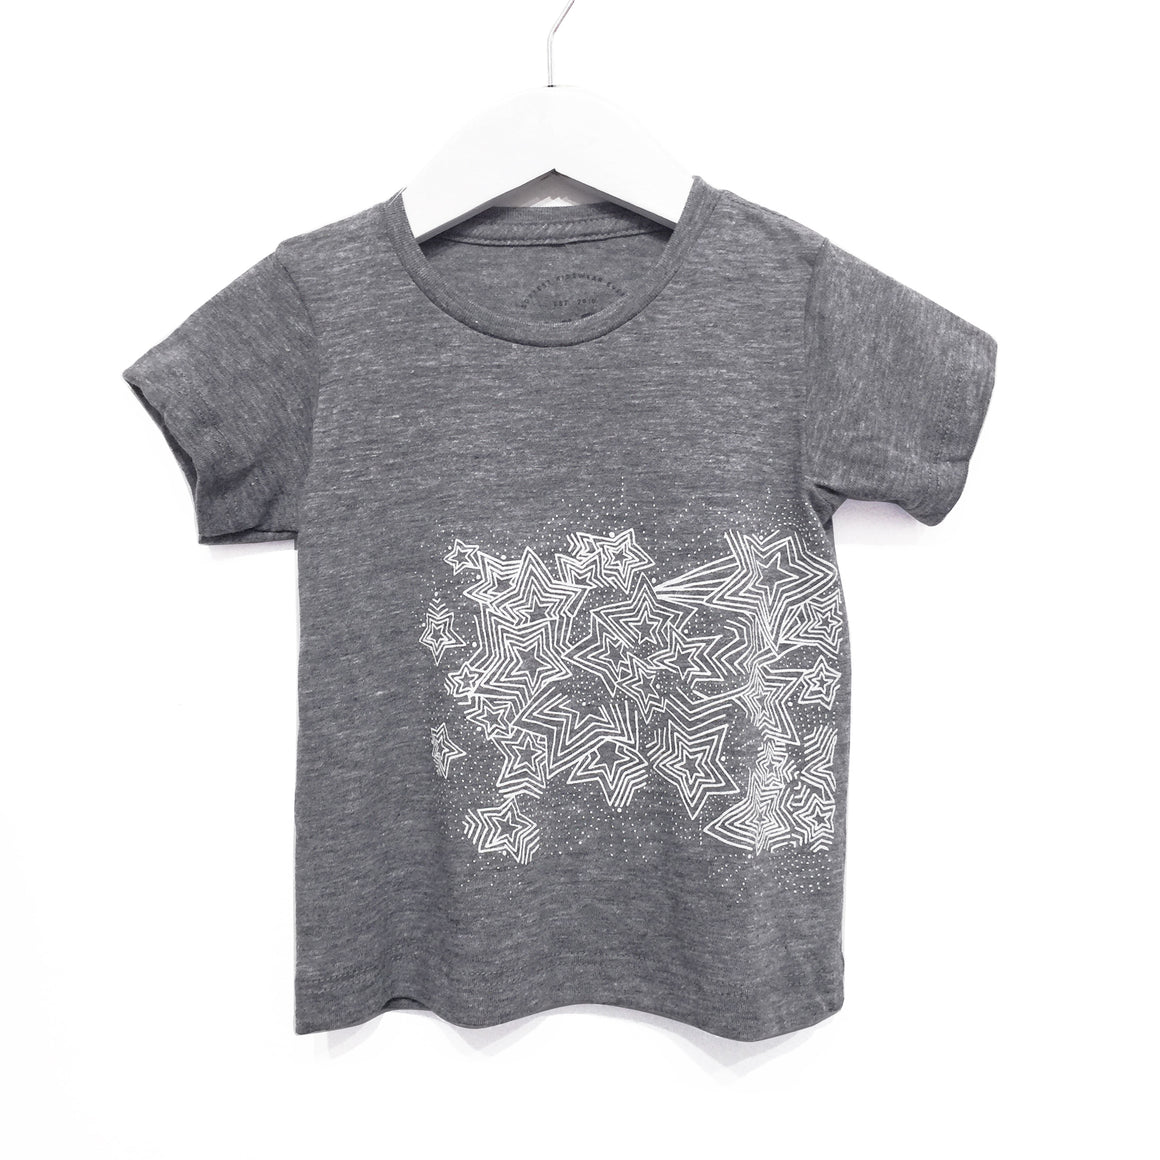 Kira x Coco, KID: Star Burst Graphic T-shirt, Heather Grey